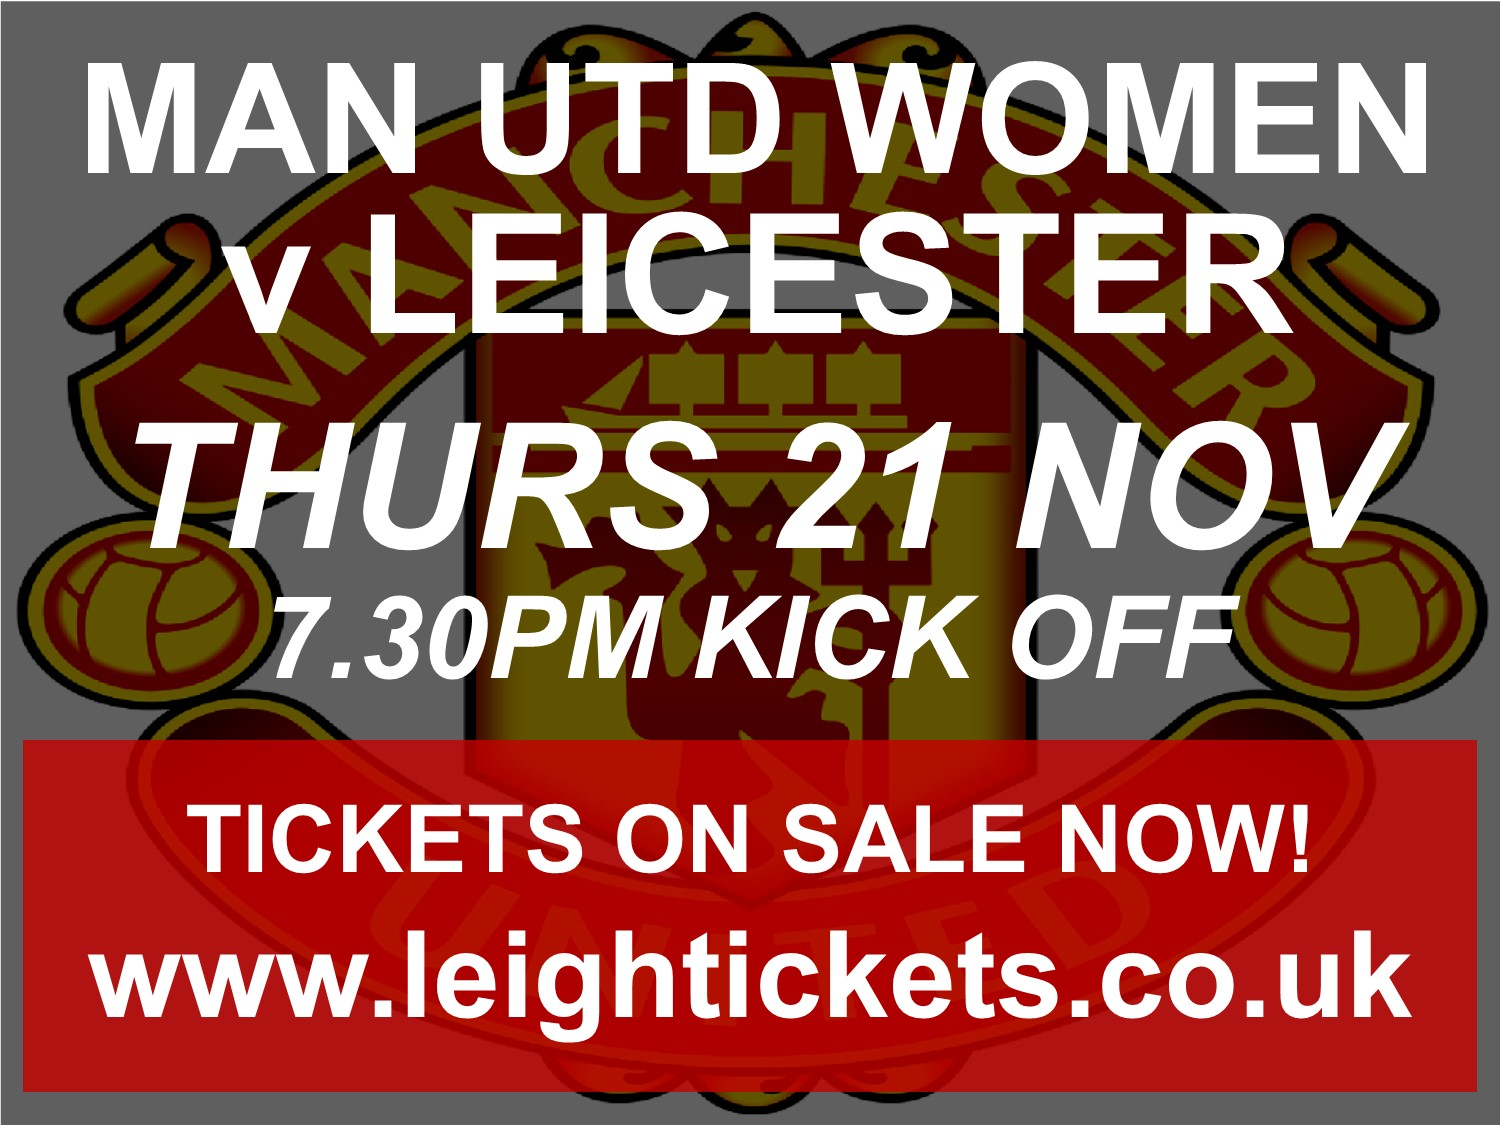 Manchester United Women v Leicester City